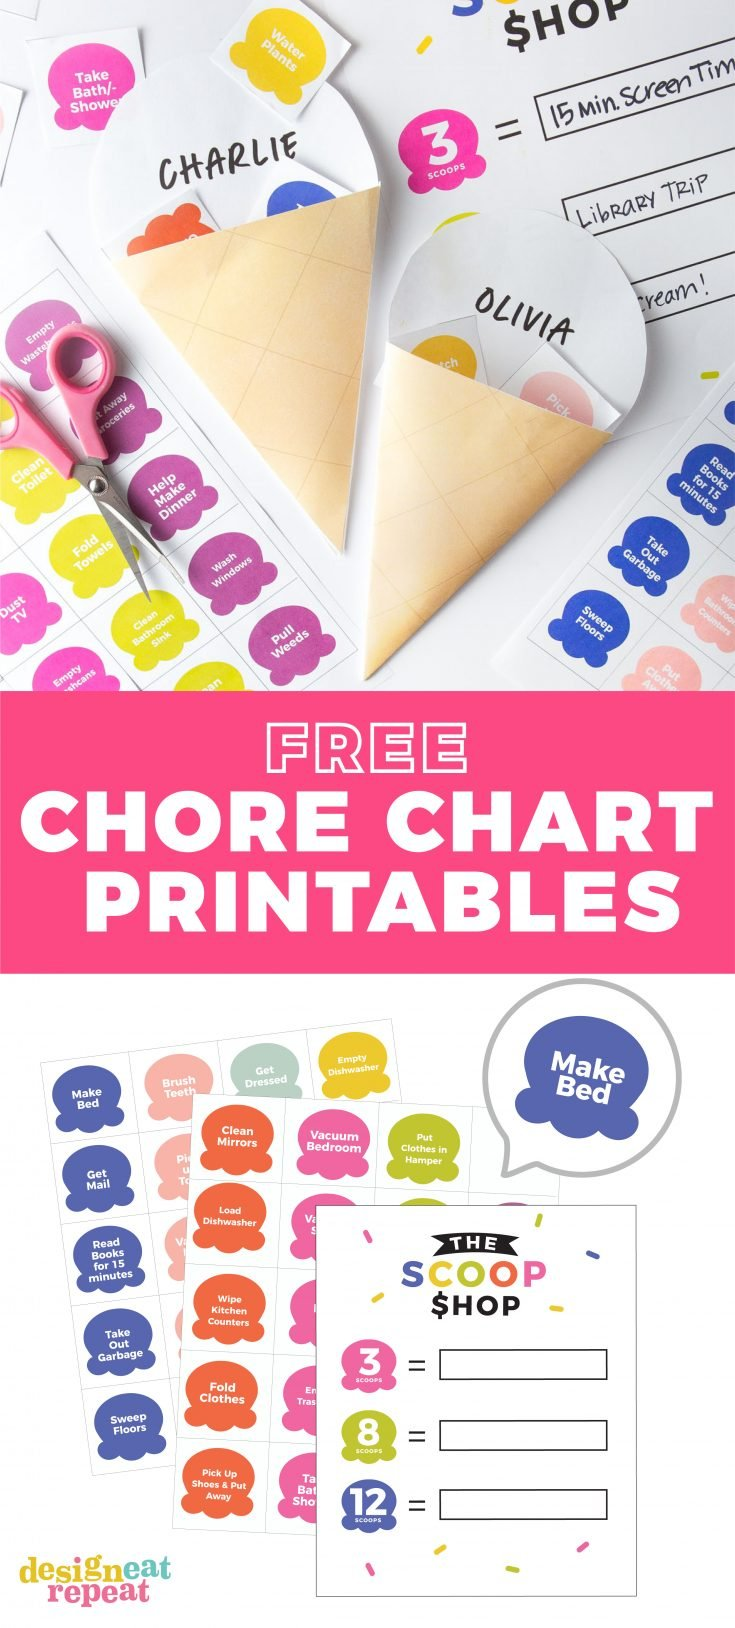 Looking for a fun & interactive way to motivate your kids to do their chores? Print off this FREE Printable Chore Chart for Kids on your home printer and let them add the ice cream scoops to their cone after each completed chore!